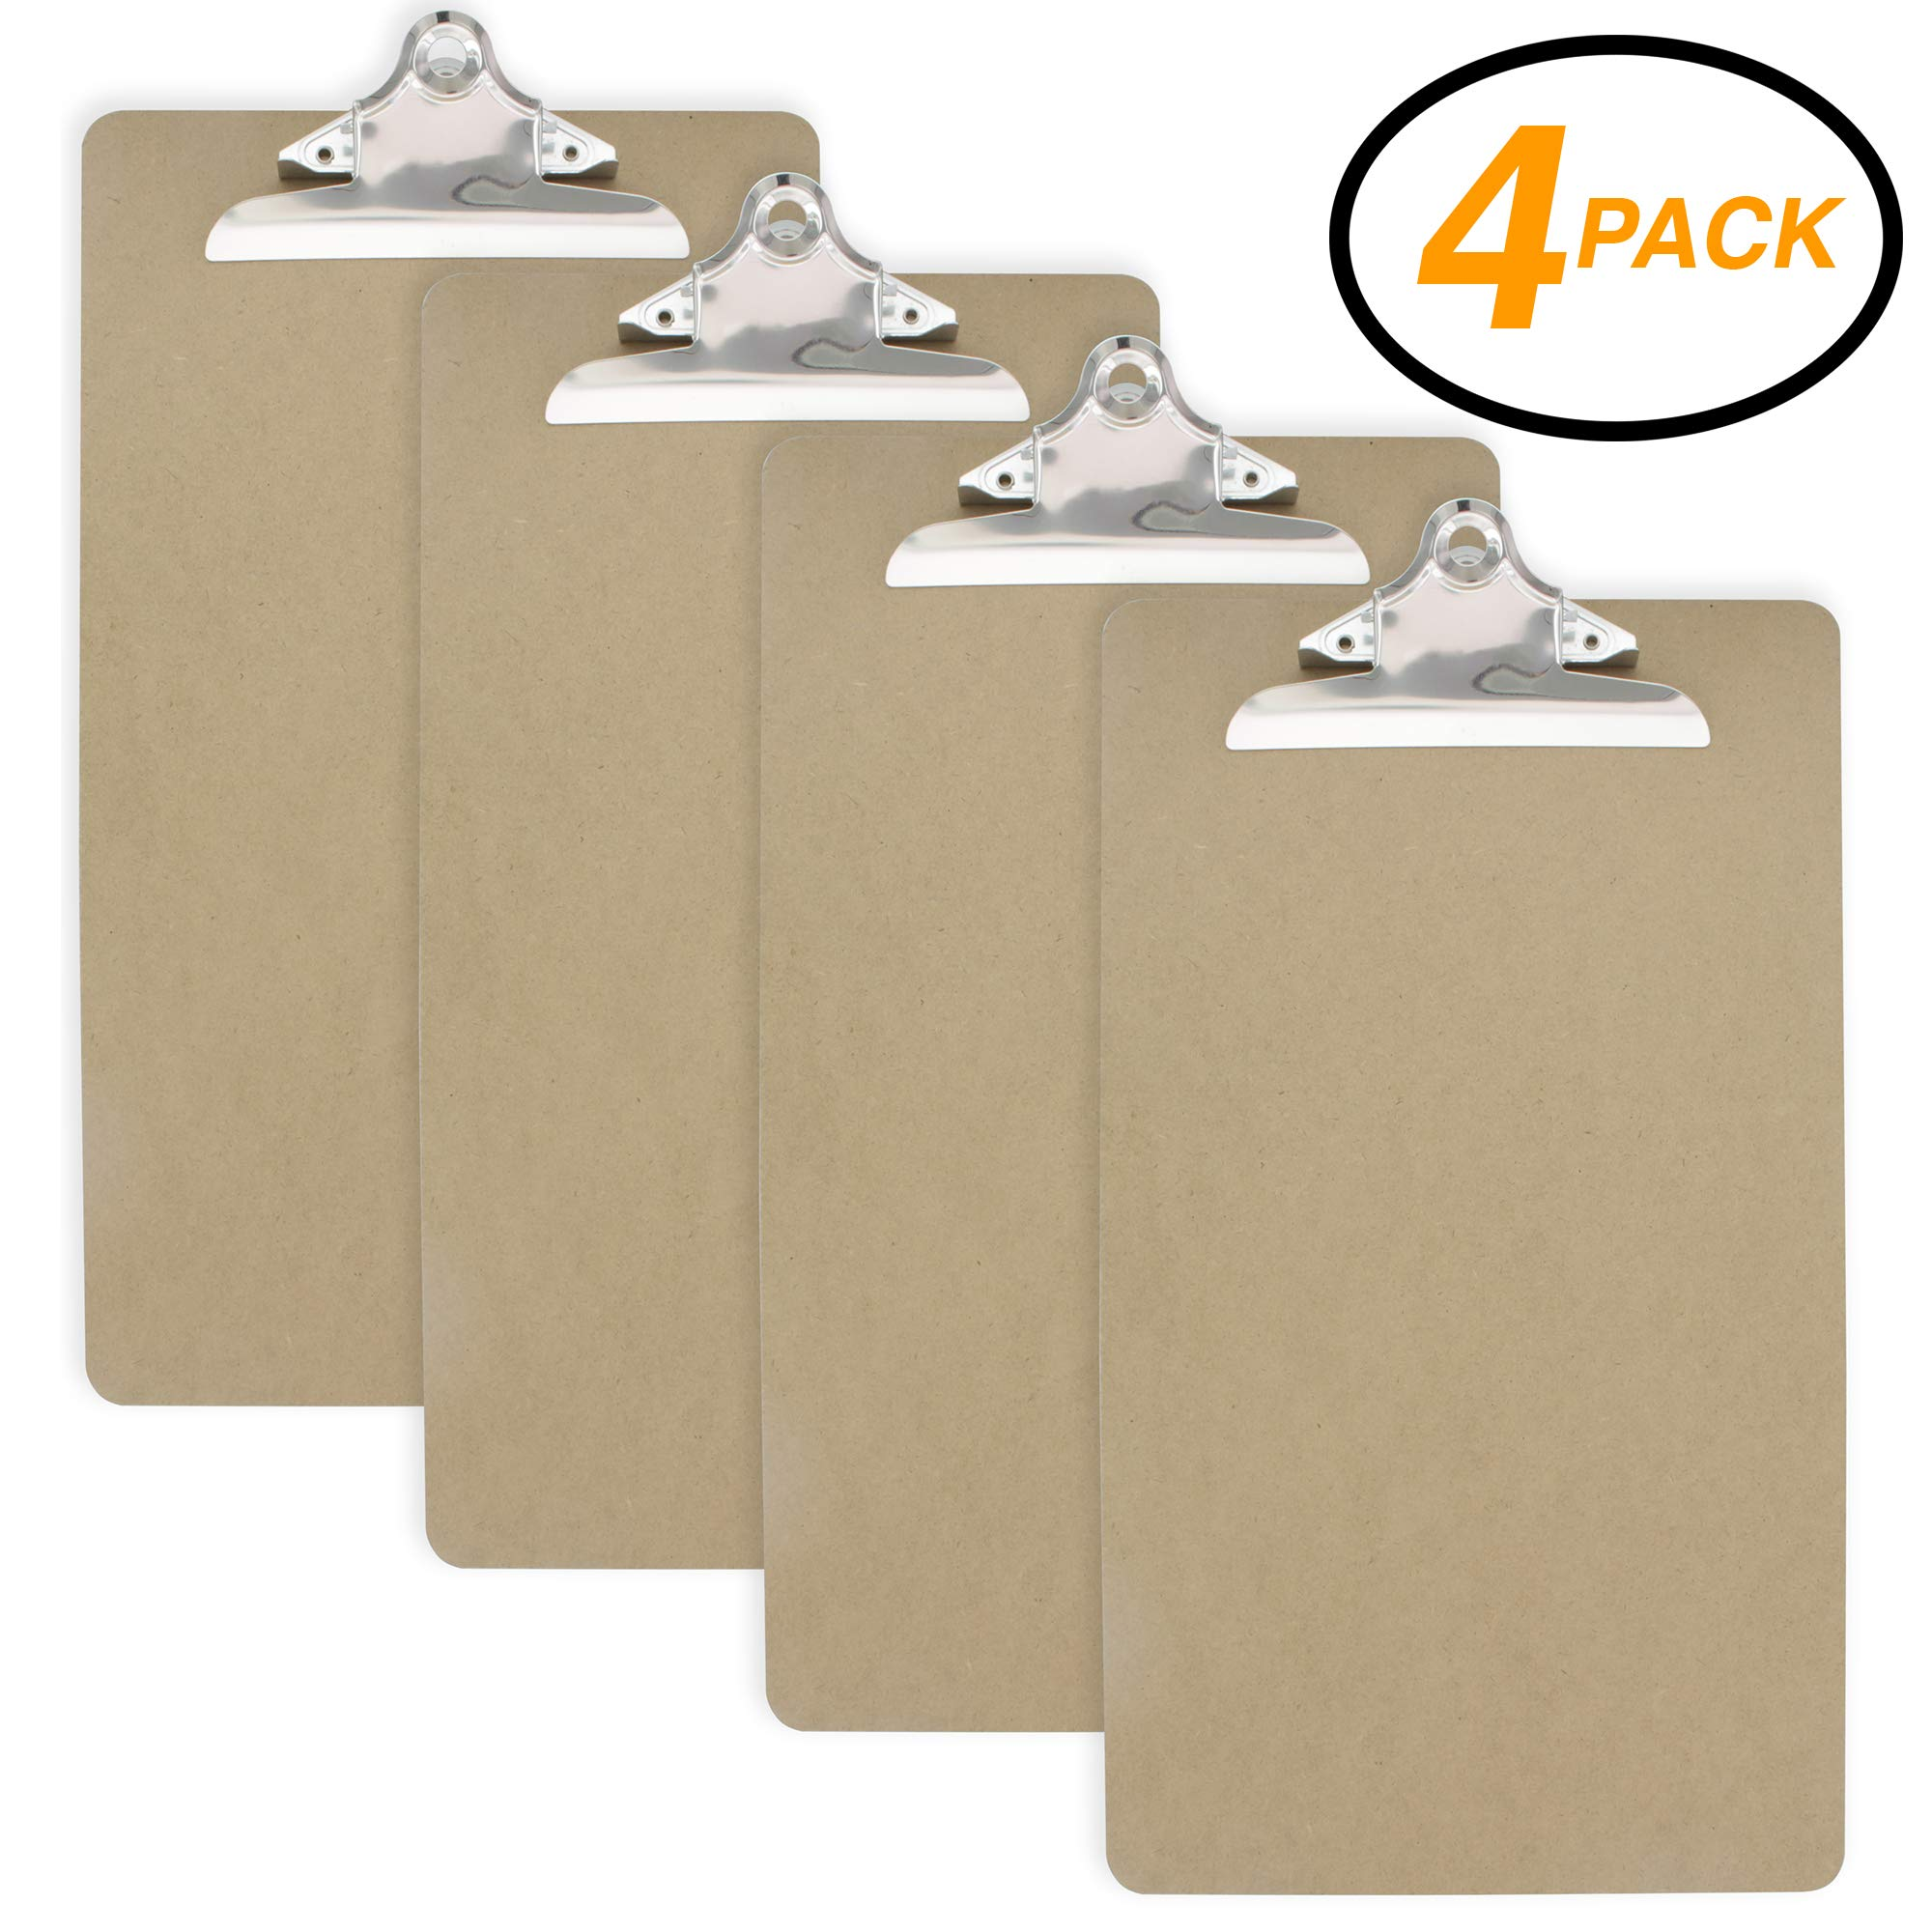 Emraw Legal Size Wood Clipboards (9'' x 15.5'') Flat Hanging Hardboard Set with Sturdy Clip for School, Office, Work, Home, Hospital - 4 Pack